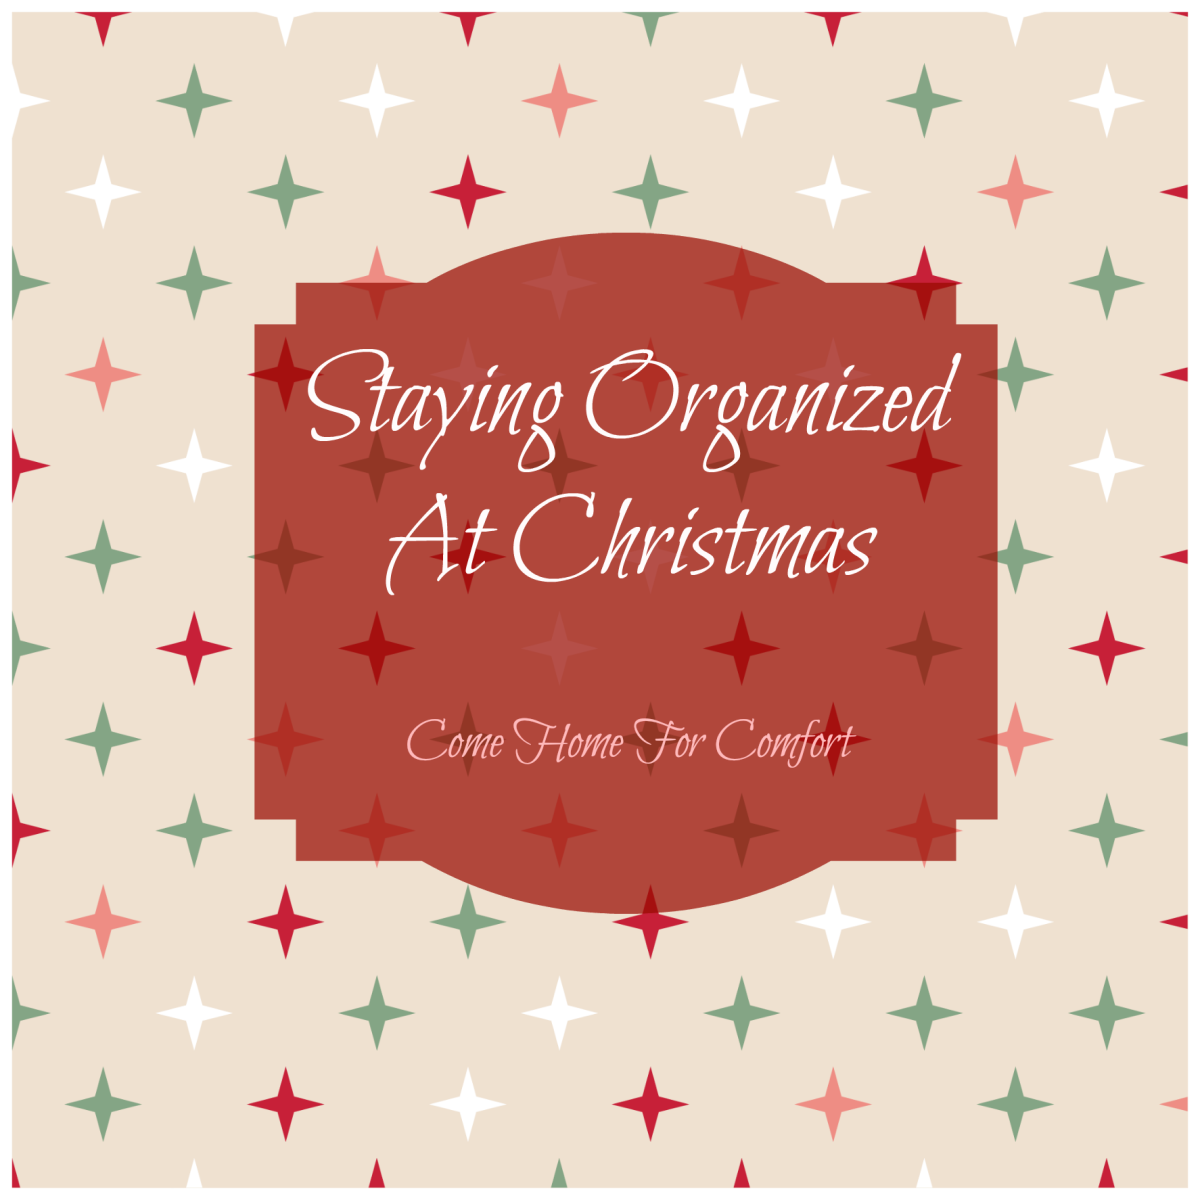 Staying Organized At Christmas Come Home For Comfort